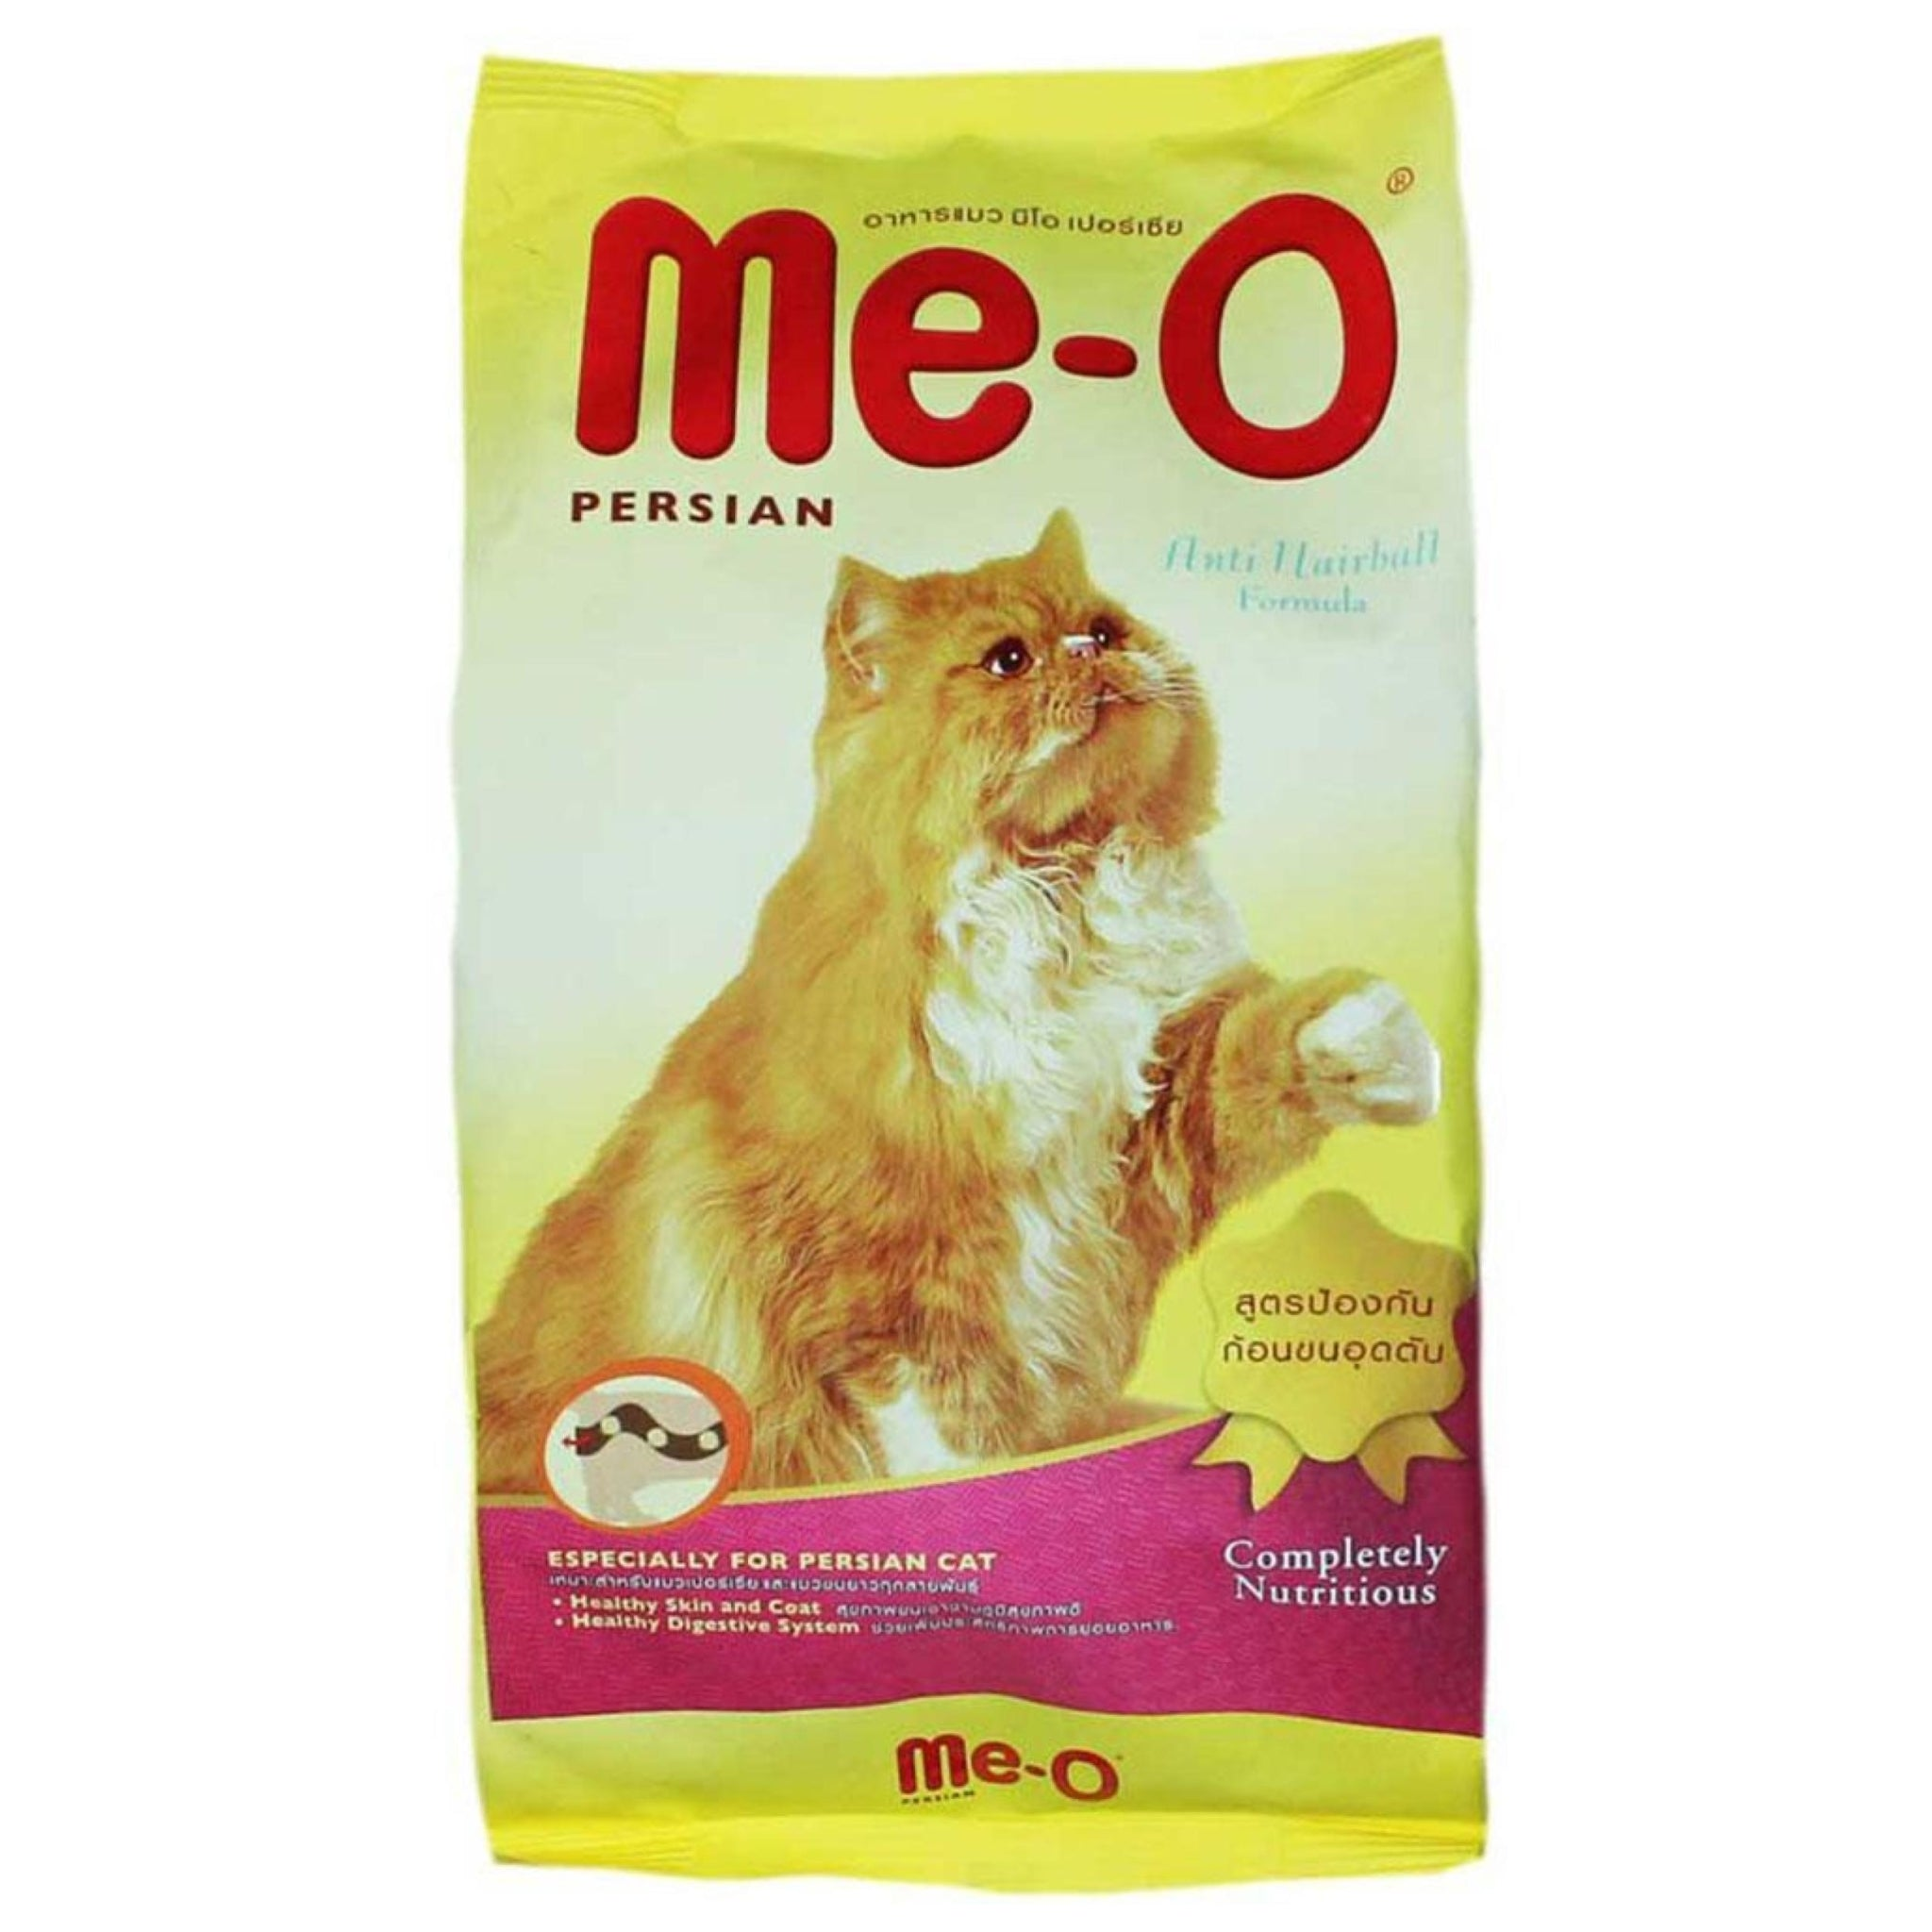 MeO Persian Anti Hair Ball Formula Cat Food - Poochles